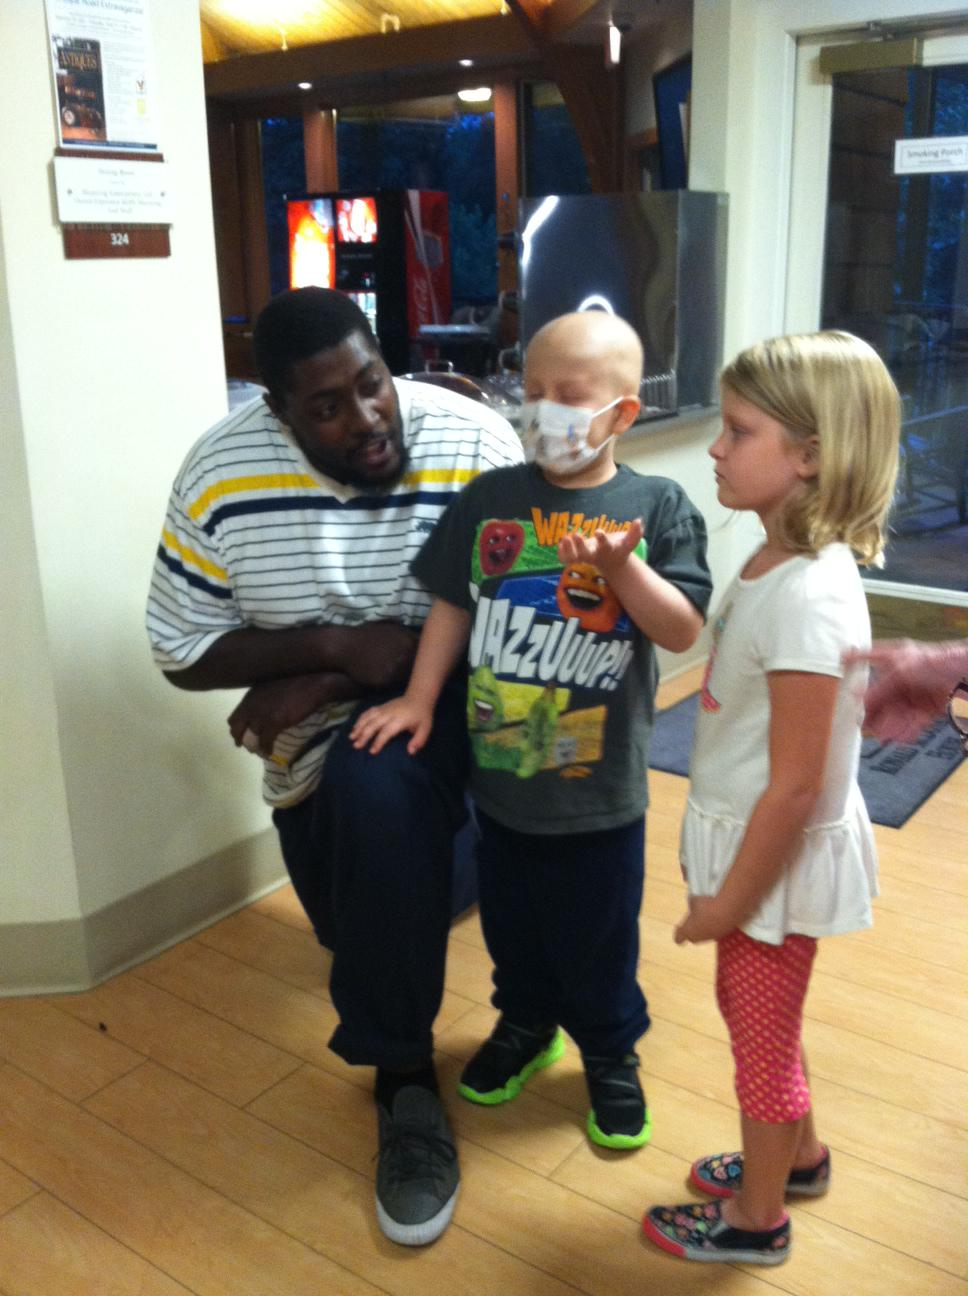 What makes a Ronald McDonald House so special? It creates a place where #HealingHappensTogether. Can't beat that! http://t.co/10G6oxypBP